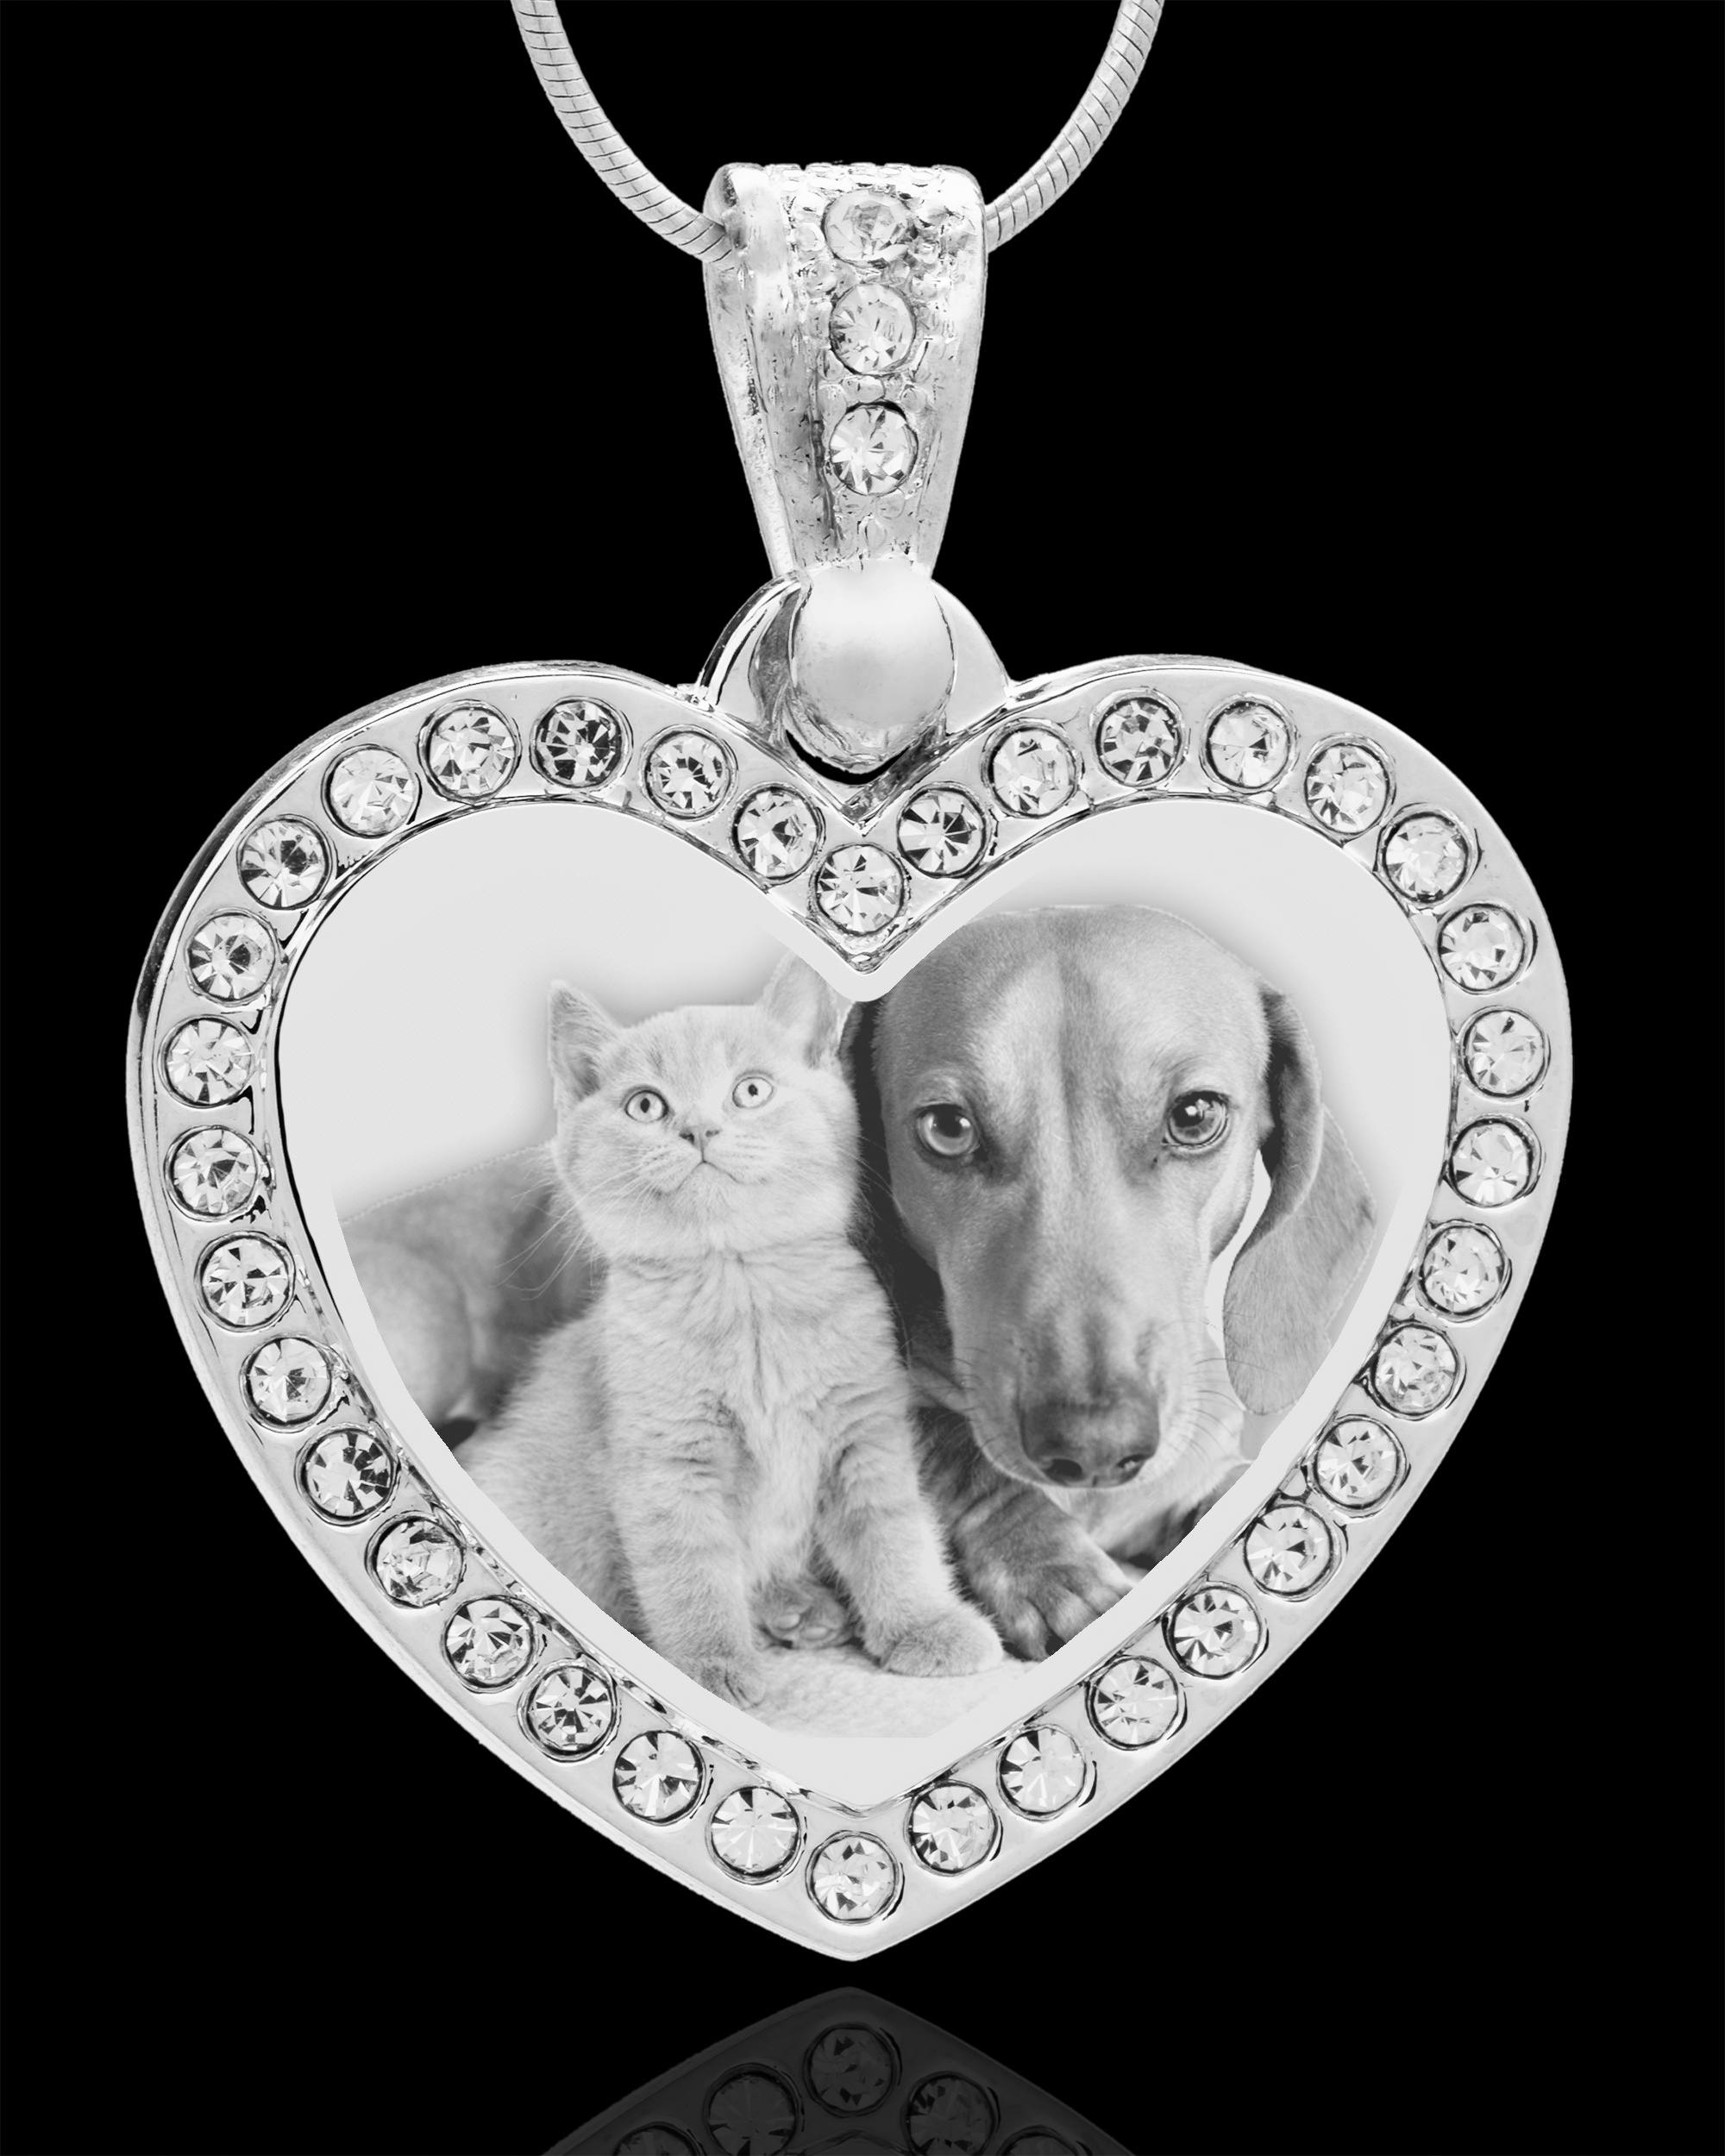 Jewelry Keepsakes81-3395Photo Eng Gem Heart Pet Pendant Stainless.jpg810